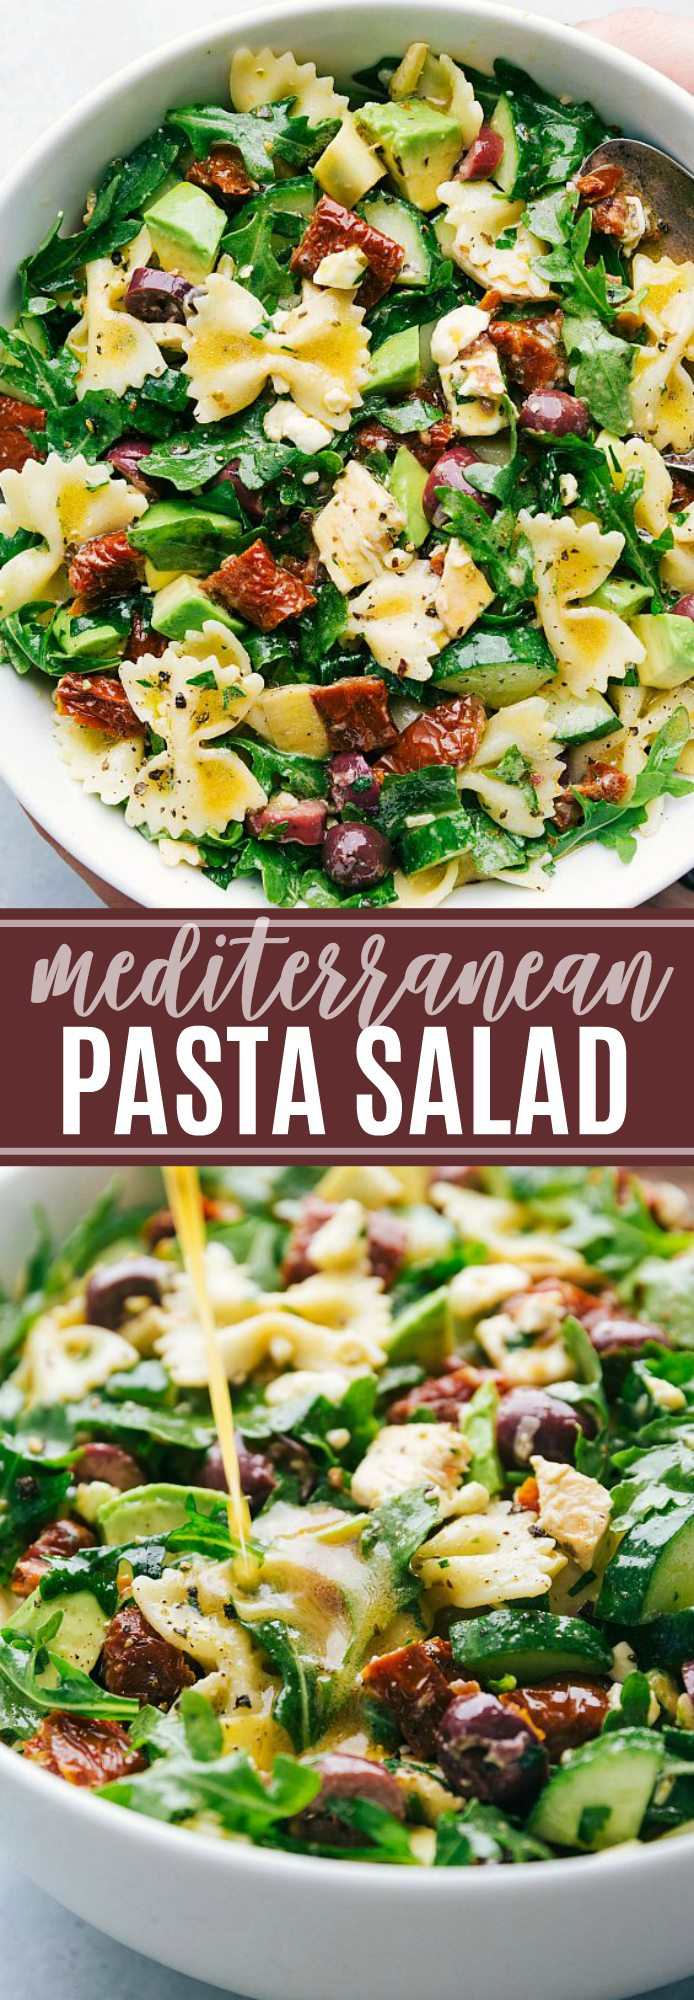 A delicious and healthy mediterranean pasta salad with arugula, veggie, and chicken salad with the best lemon vinaigrette! (Vegetarian option) via chelseasmessyapron.com #mediterranean #pasta #salad #easy #healthy #quick #potluck #party #healthy #avocado #tomato #olive #arugula #kidfriendly #feta